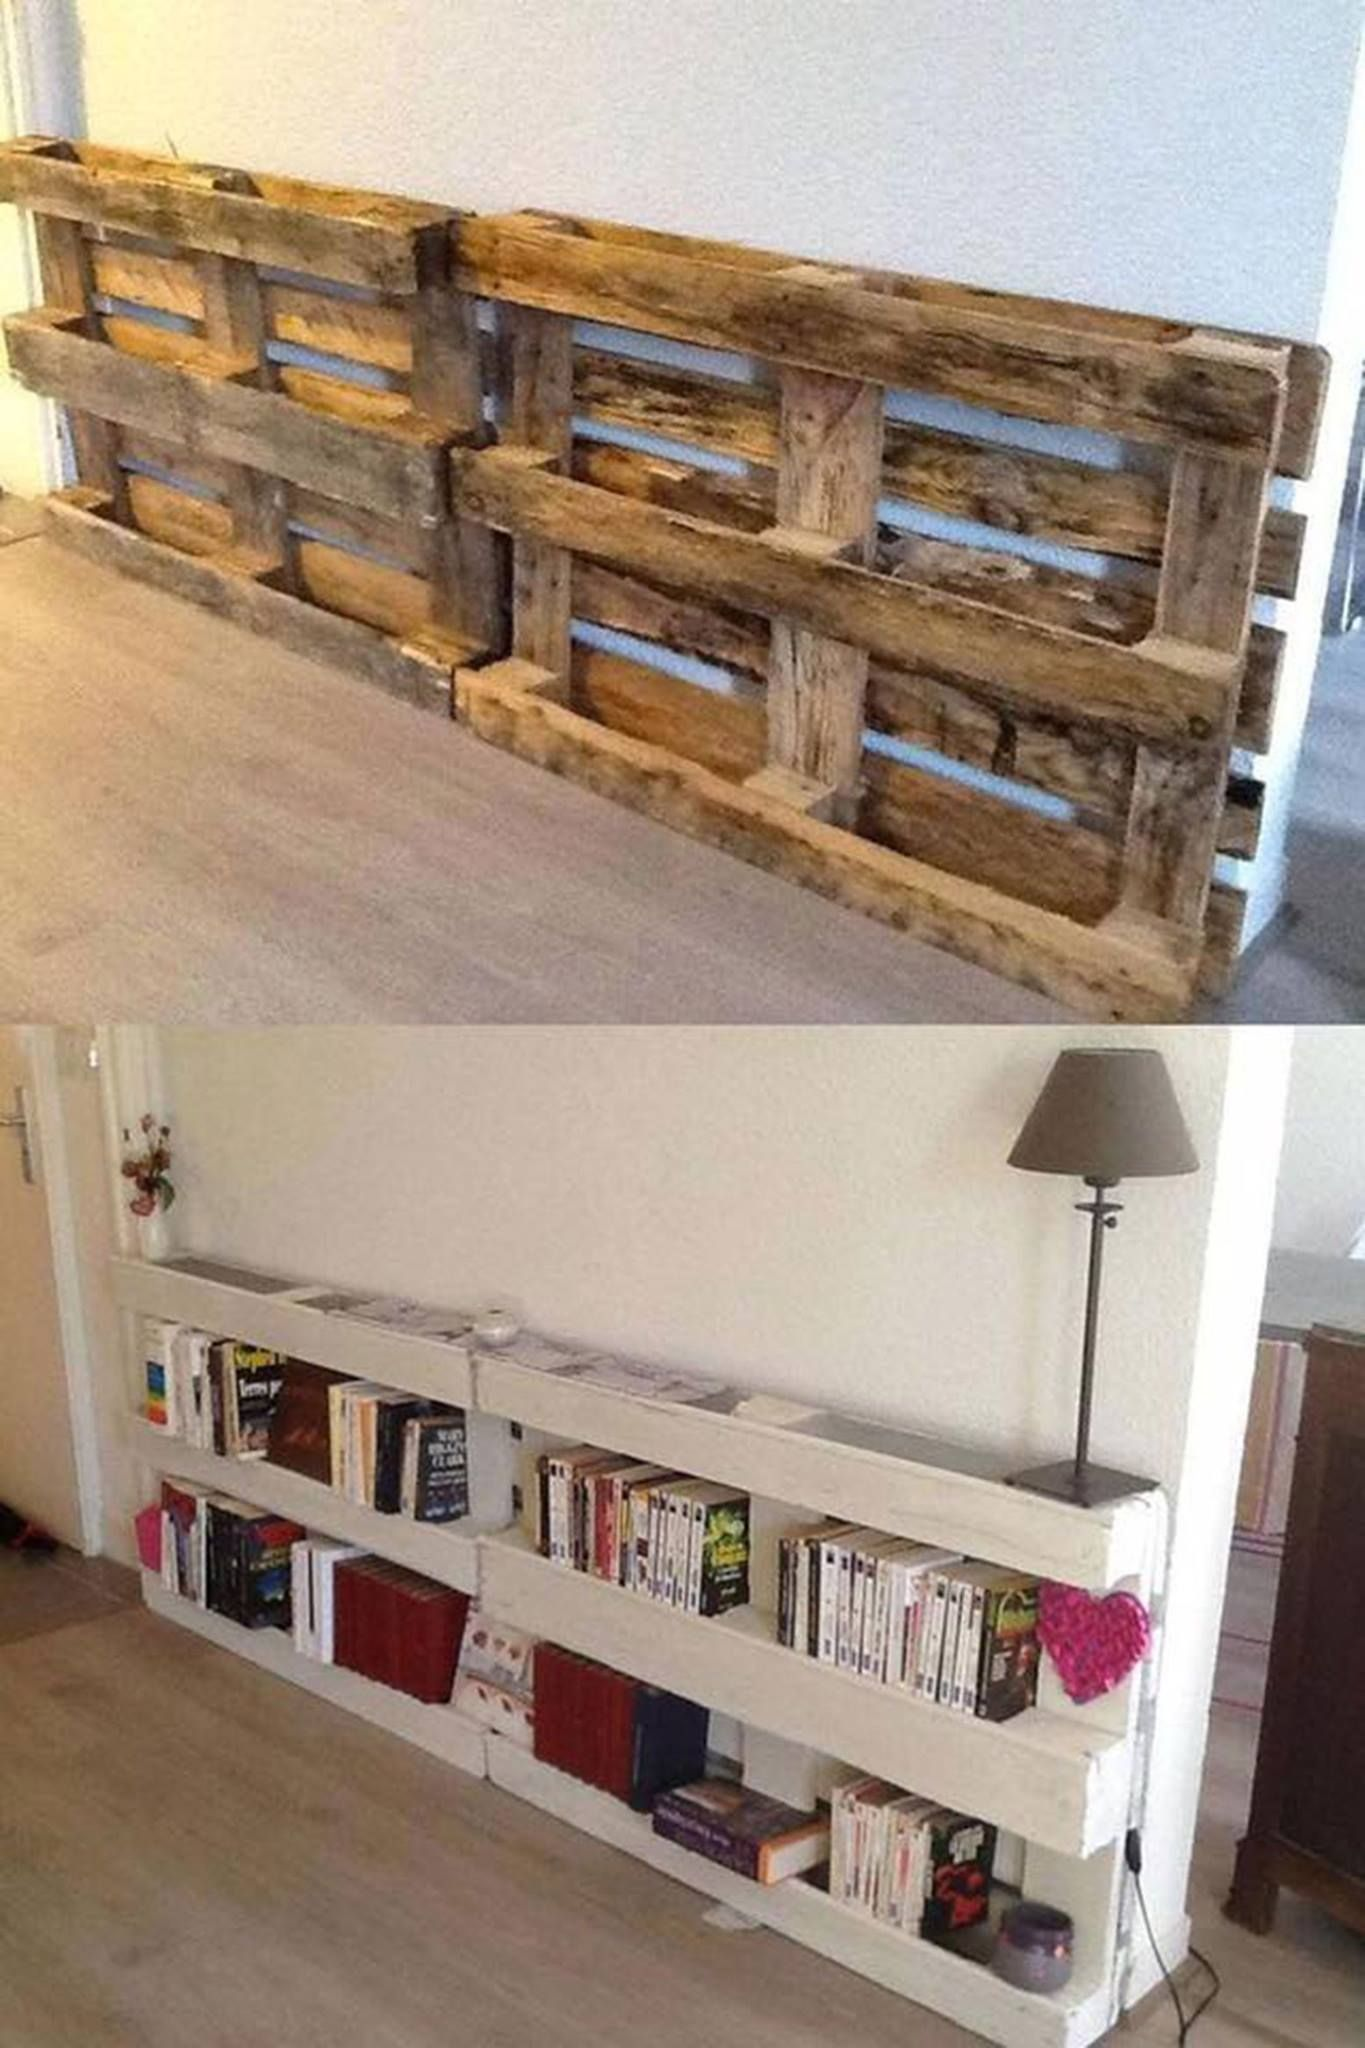 Bücherregal Aus Paletten Bauen Diy Pallet Bookshelves These Are The Best Pallet Wood Ideas